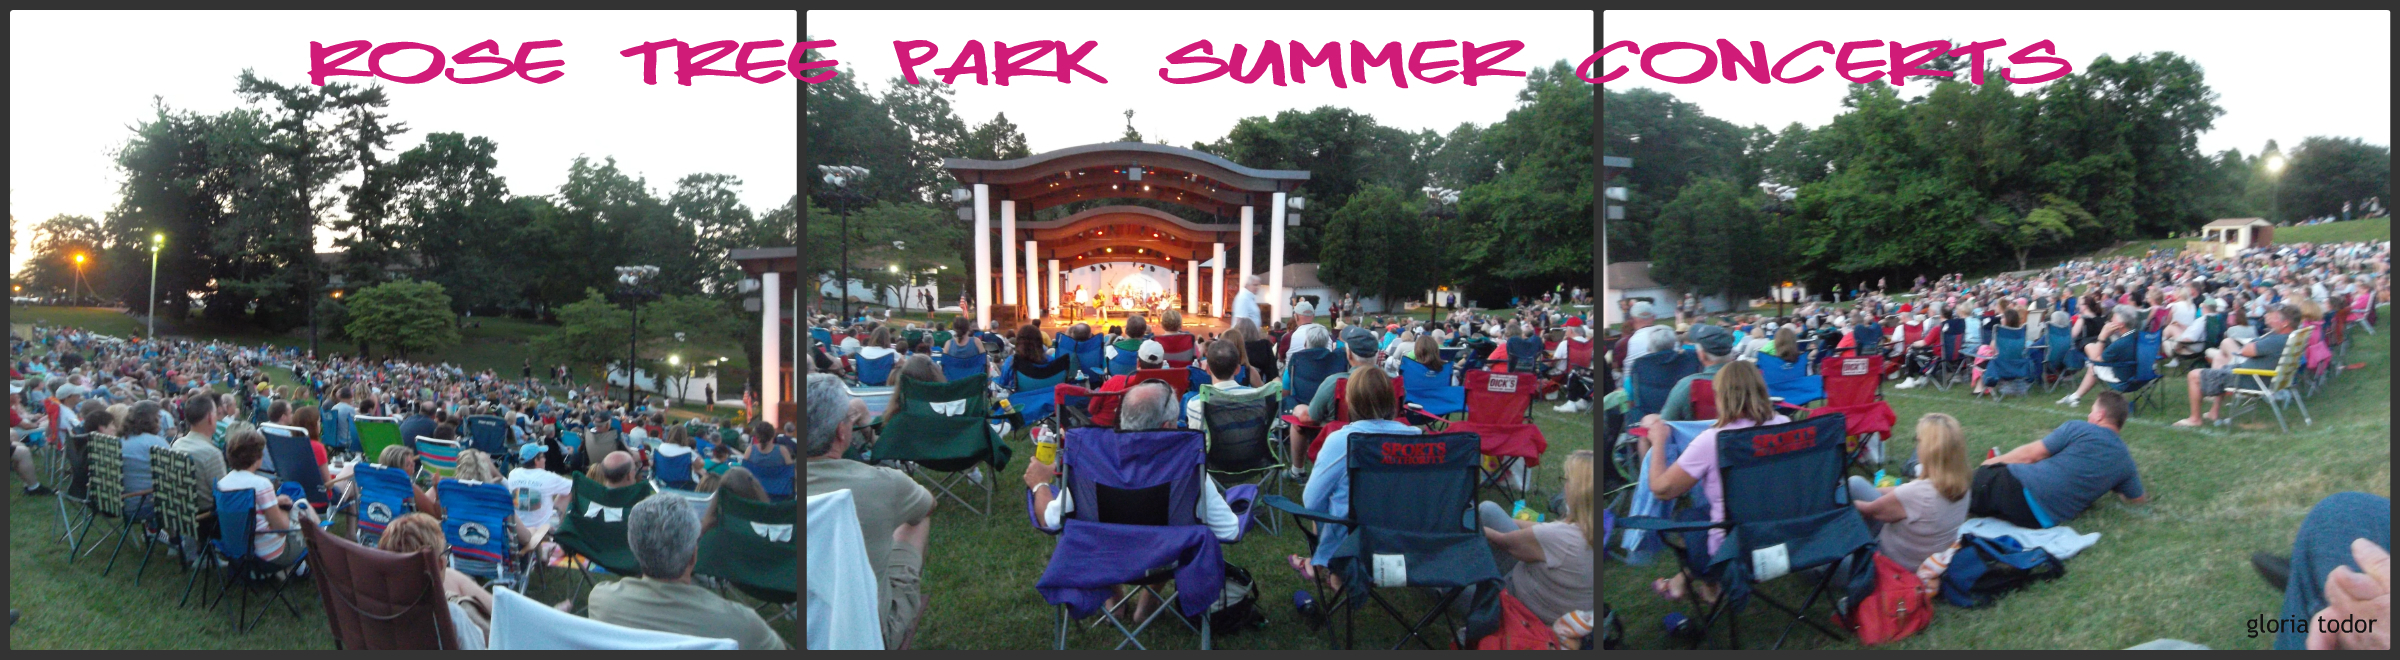 Rose Tree Park Summer Concerts